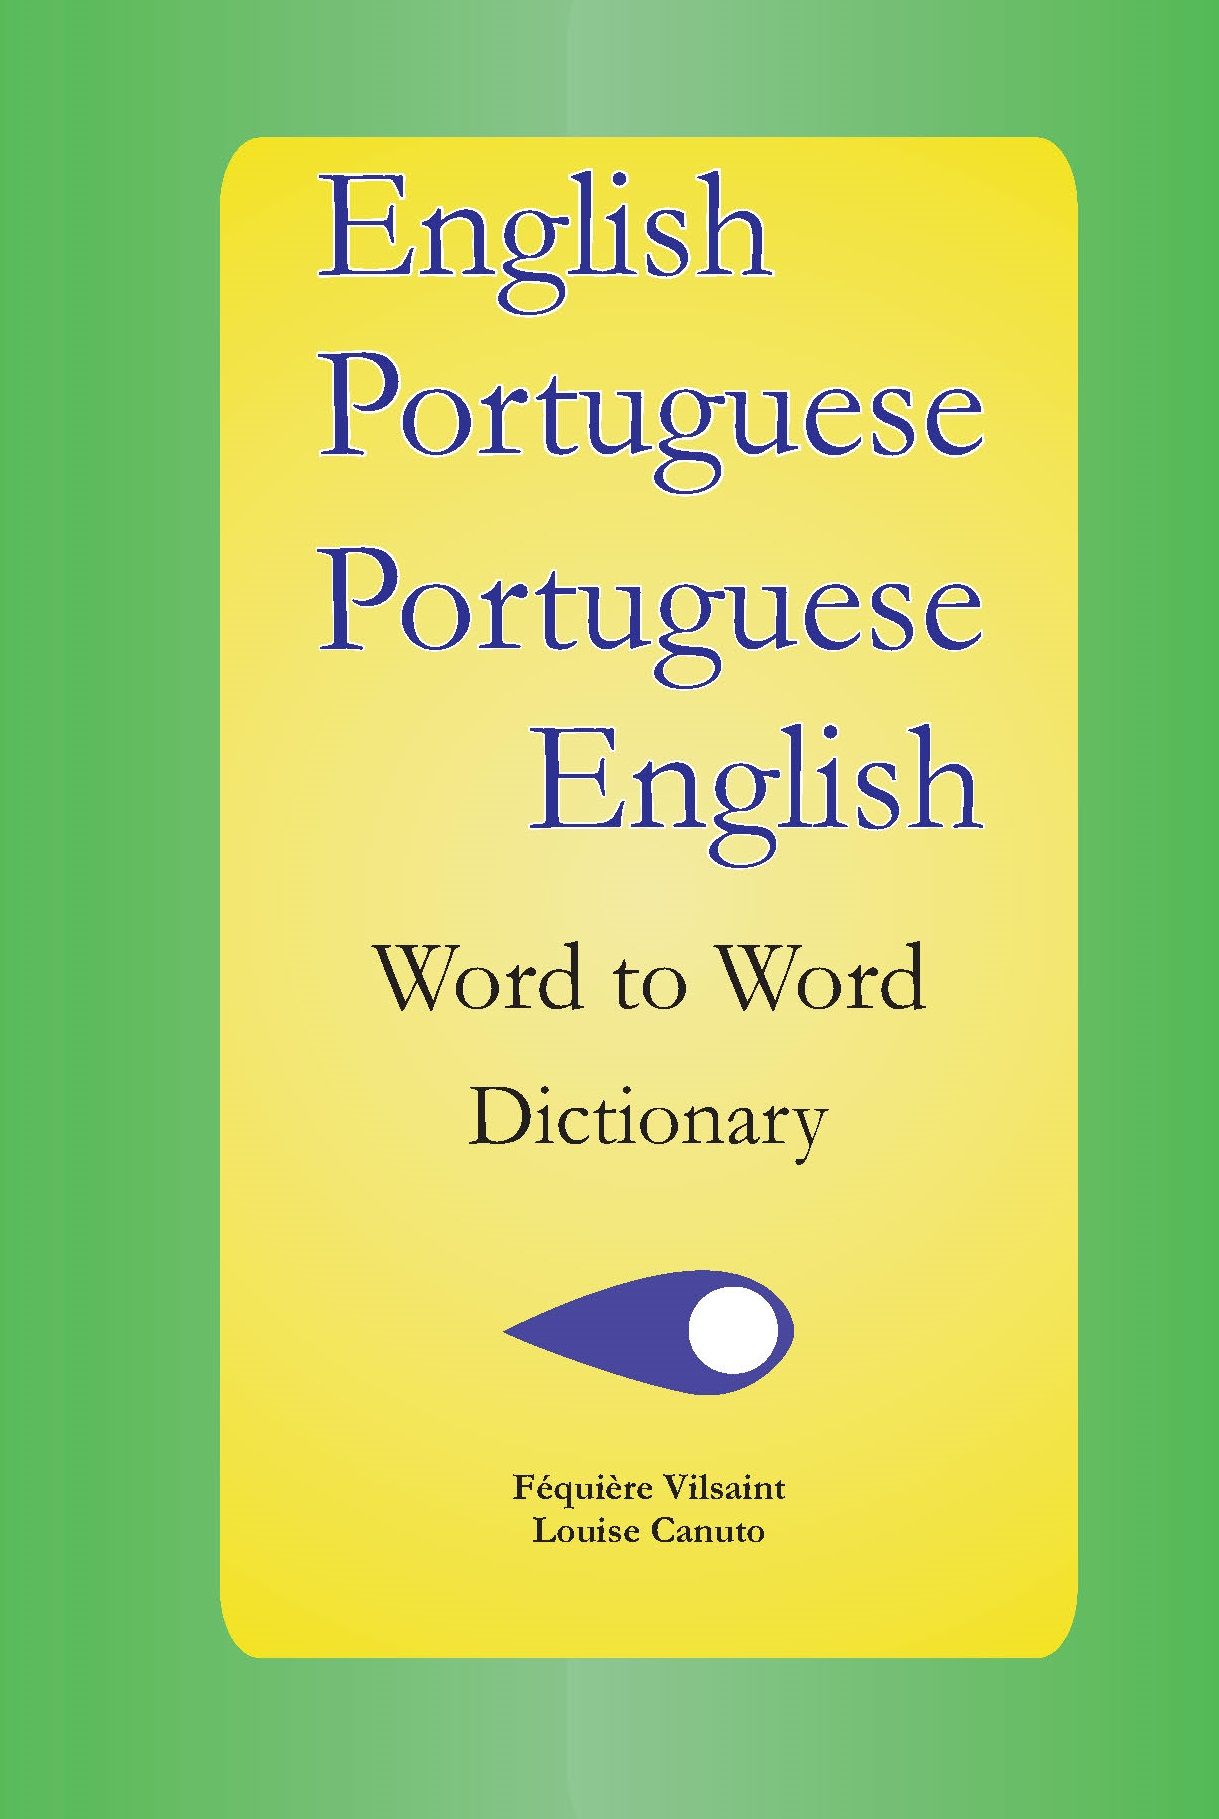 English-Portuguese, Portuguese-English Word to Word Dictionary